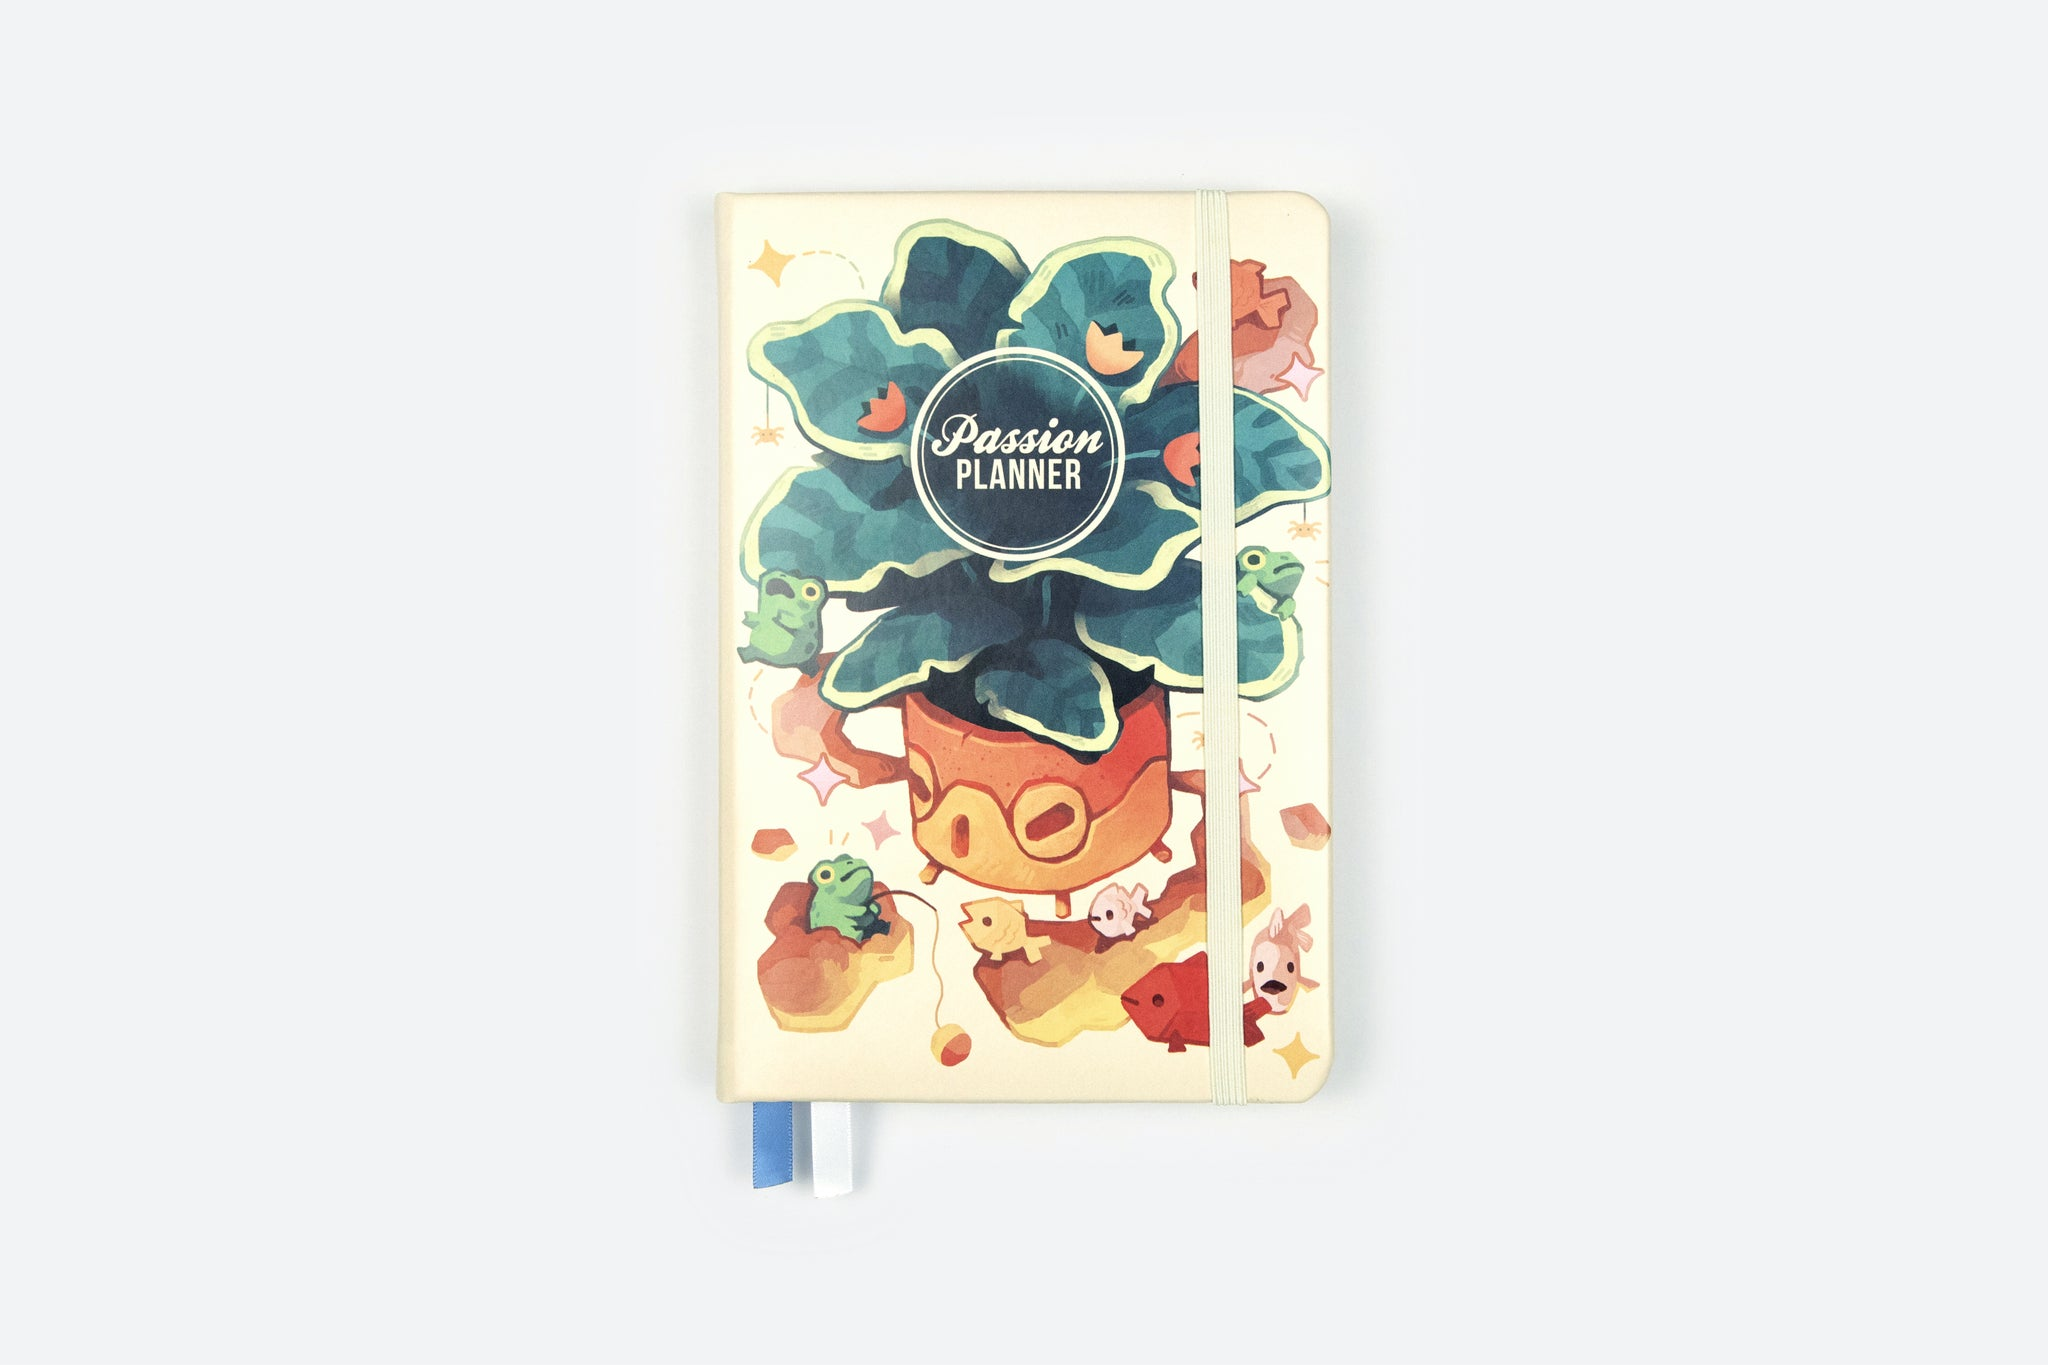 Academic Passion Planner in Playful Pond